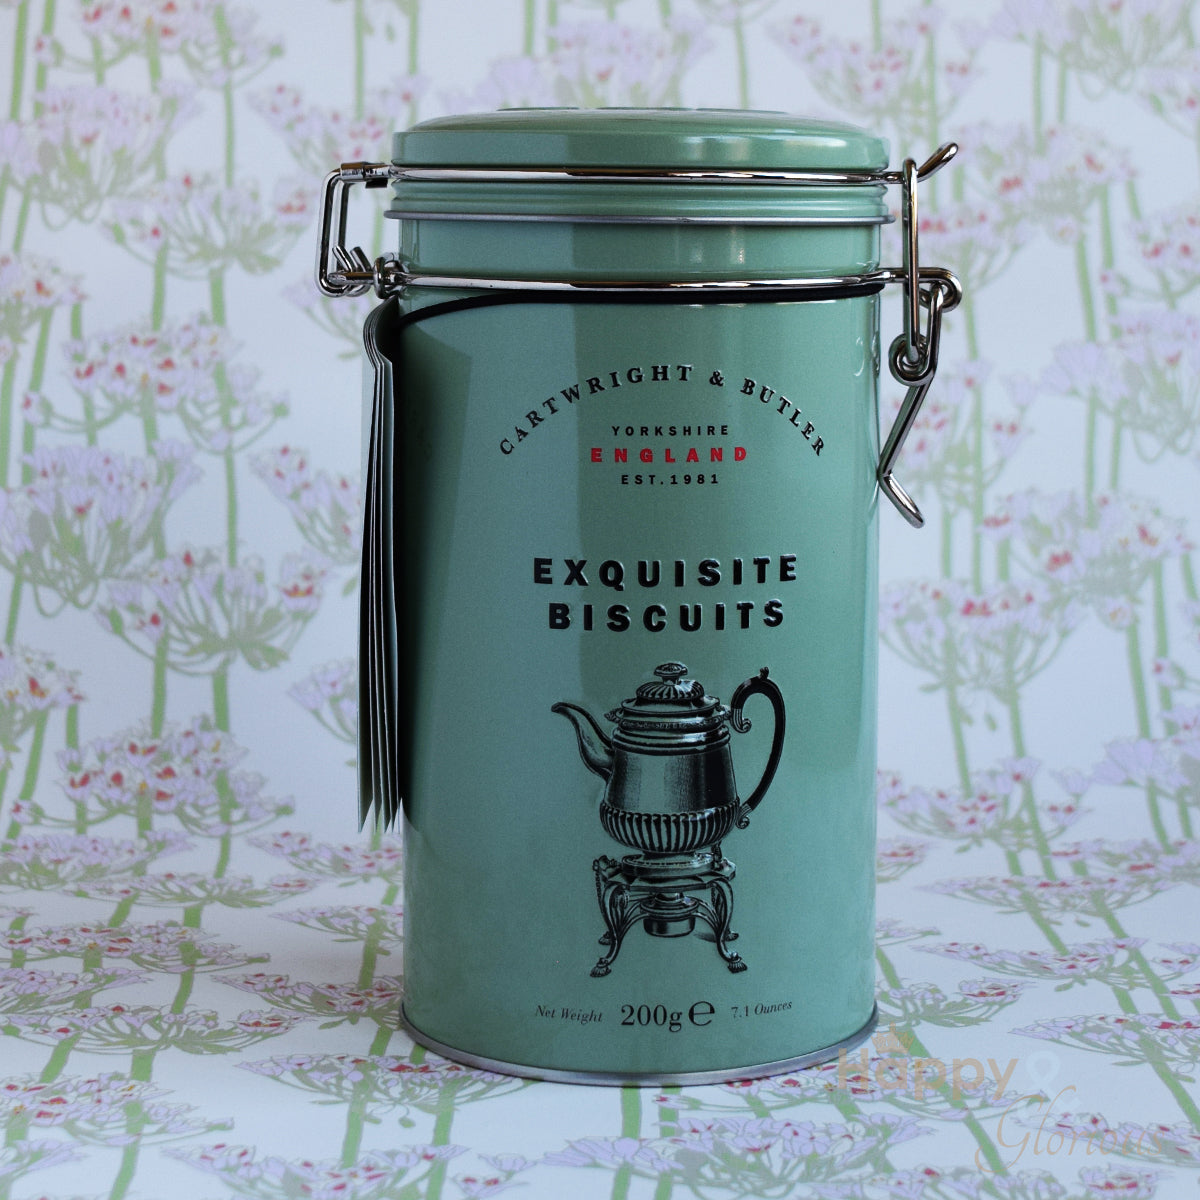 Pistachio shortbread biscuits in vintage style tin